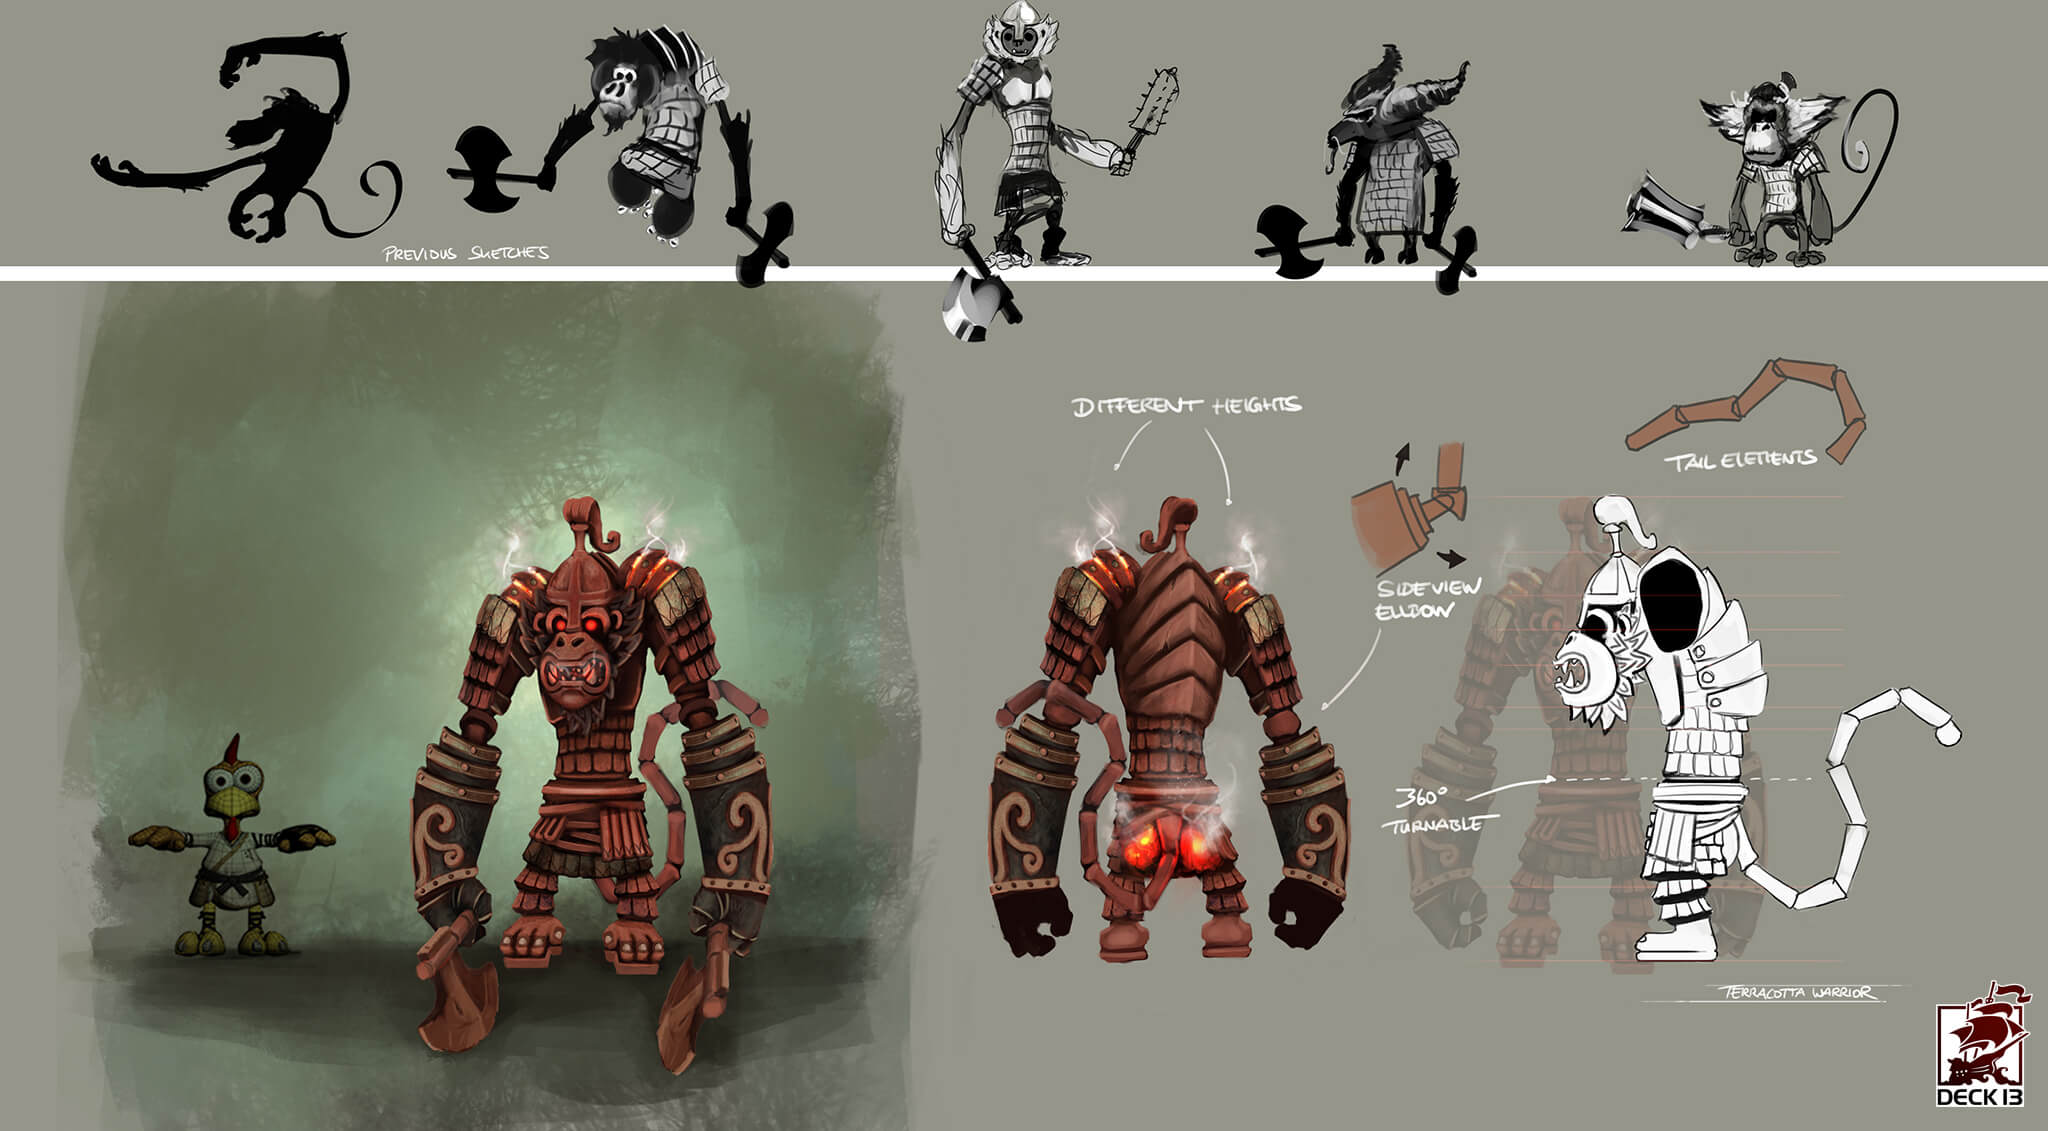 tiger-and-chicken-deck13-felix-haas-concept-artist-terracotta_warrior_004 Kopie